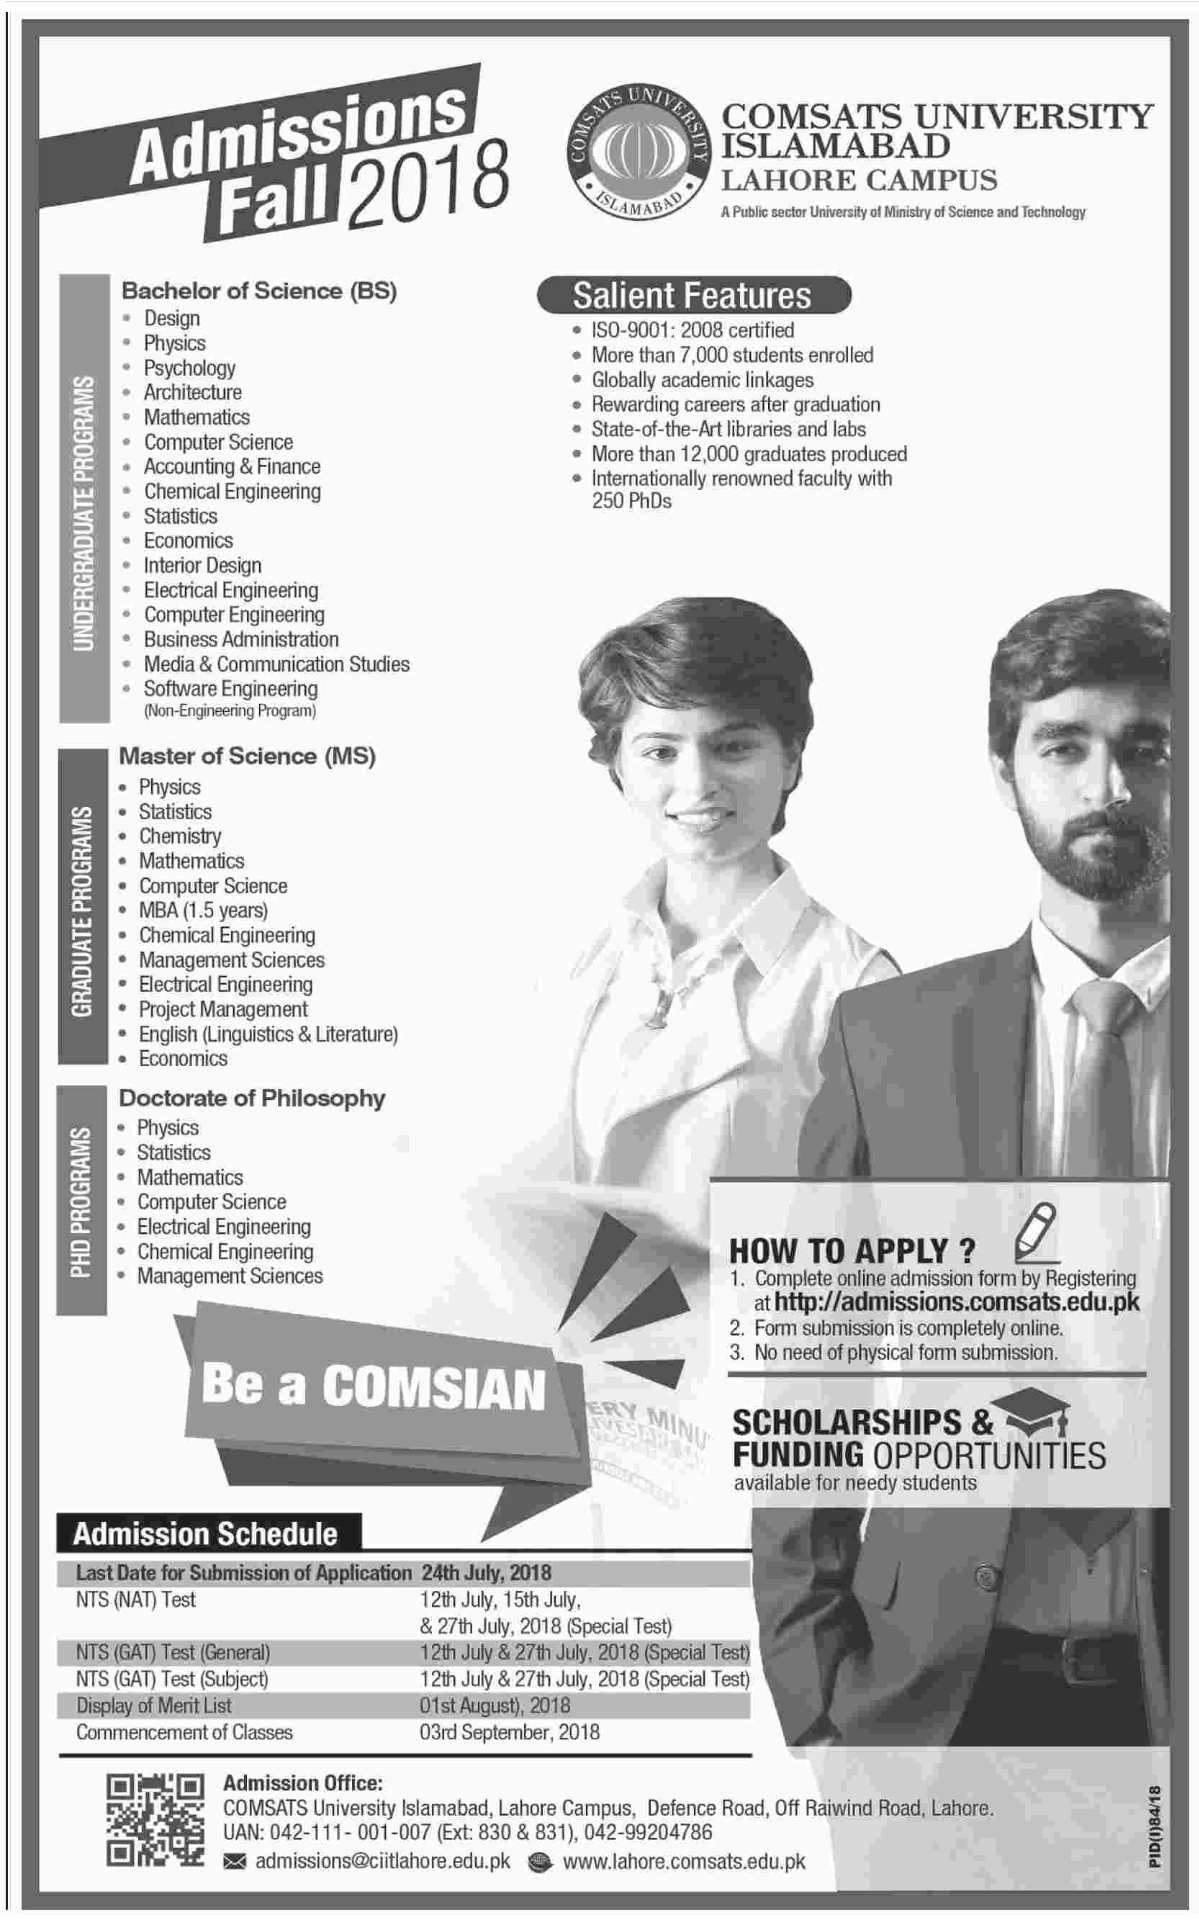 Revised Schedule of COMSATS Lahore Campus Admissions 2018